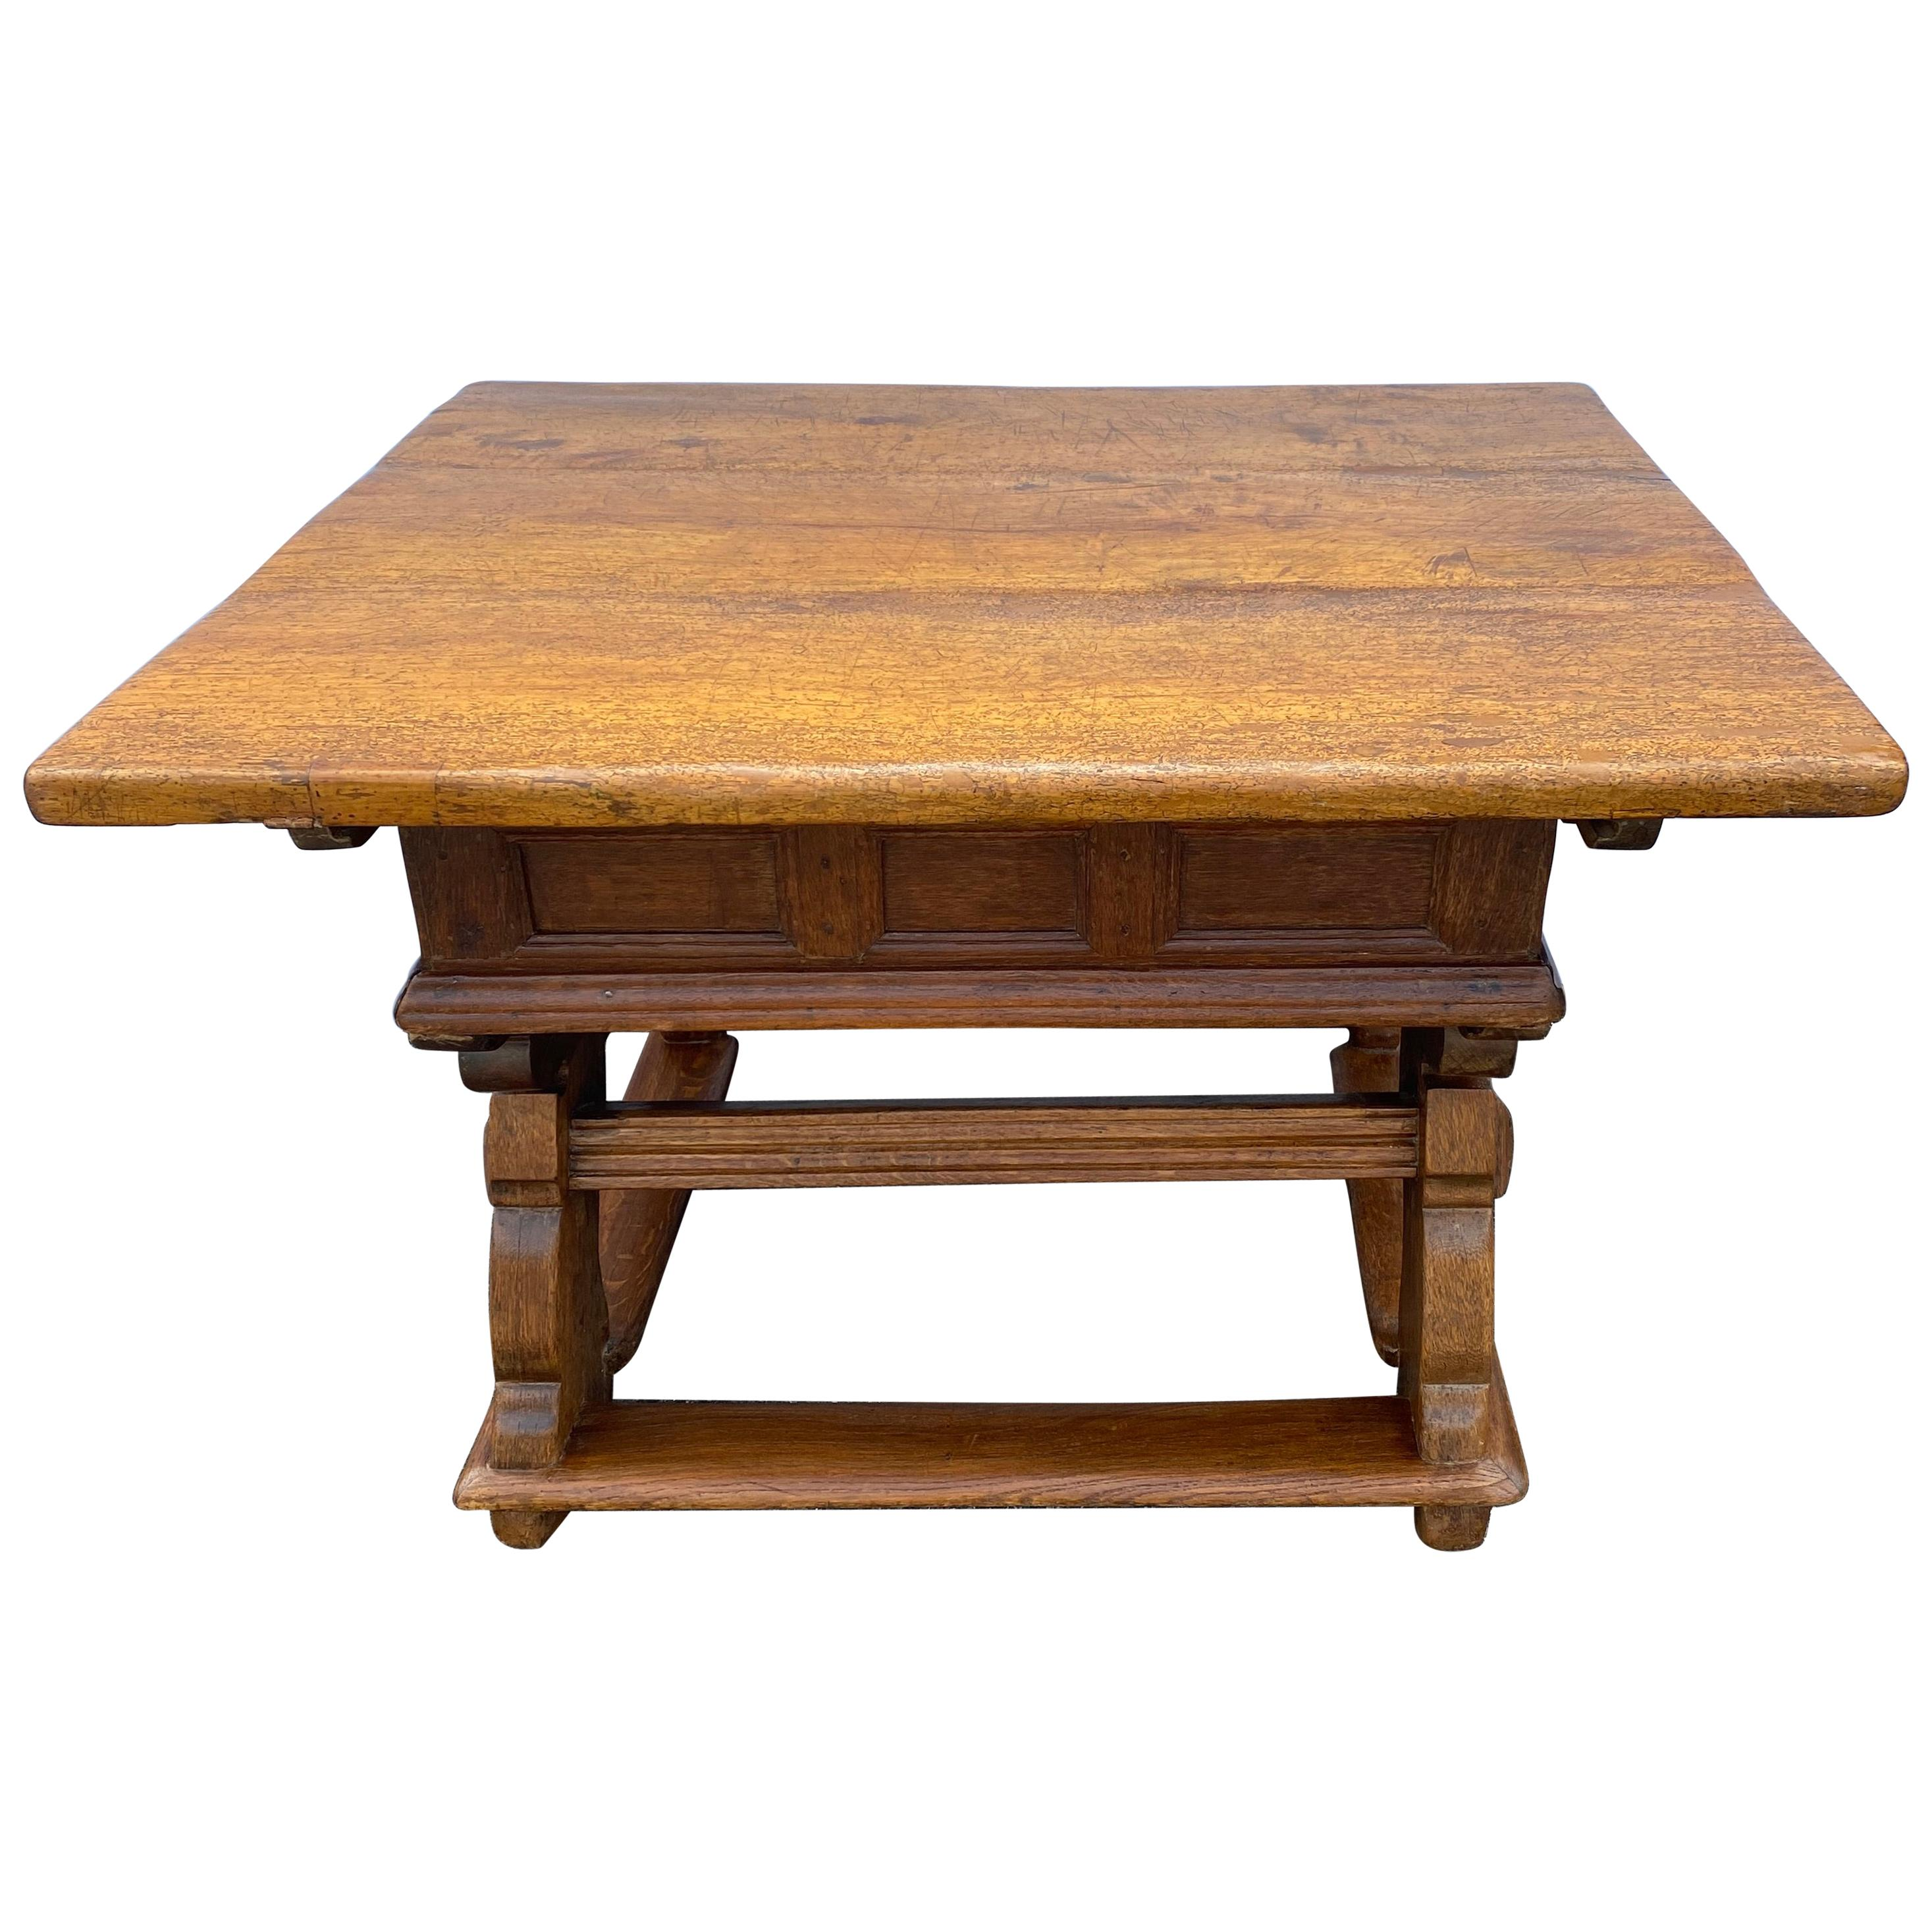 Early German 18th Century Refectory Table With Sliding Table-top